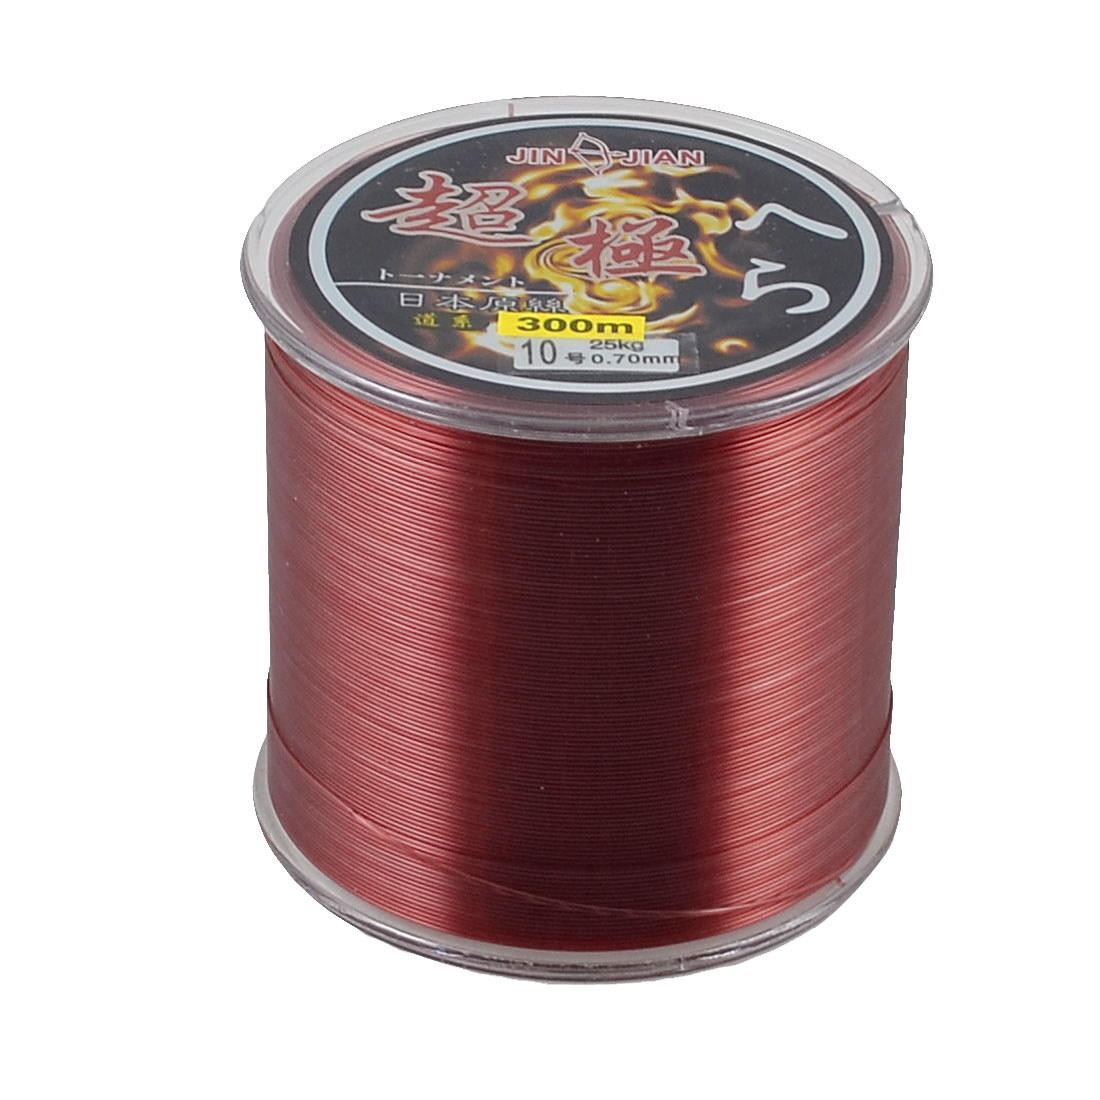 300m 0.70mm Dia 25Kg Burgundy Nylon Abrasion Resistance Fishing Spool Line 10#